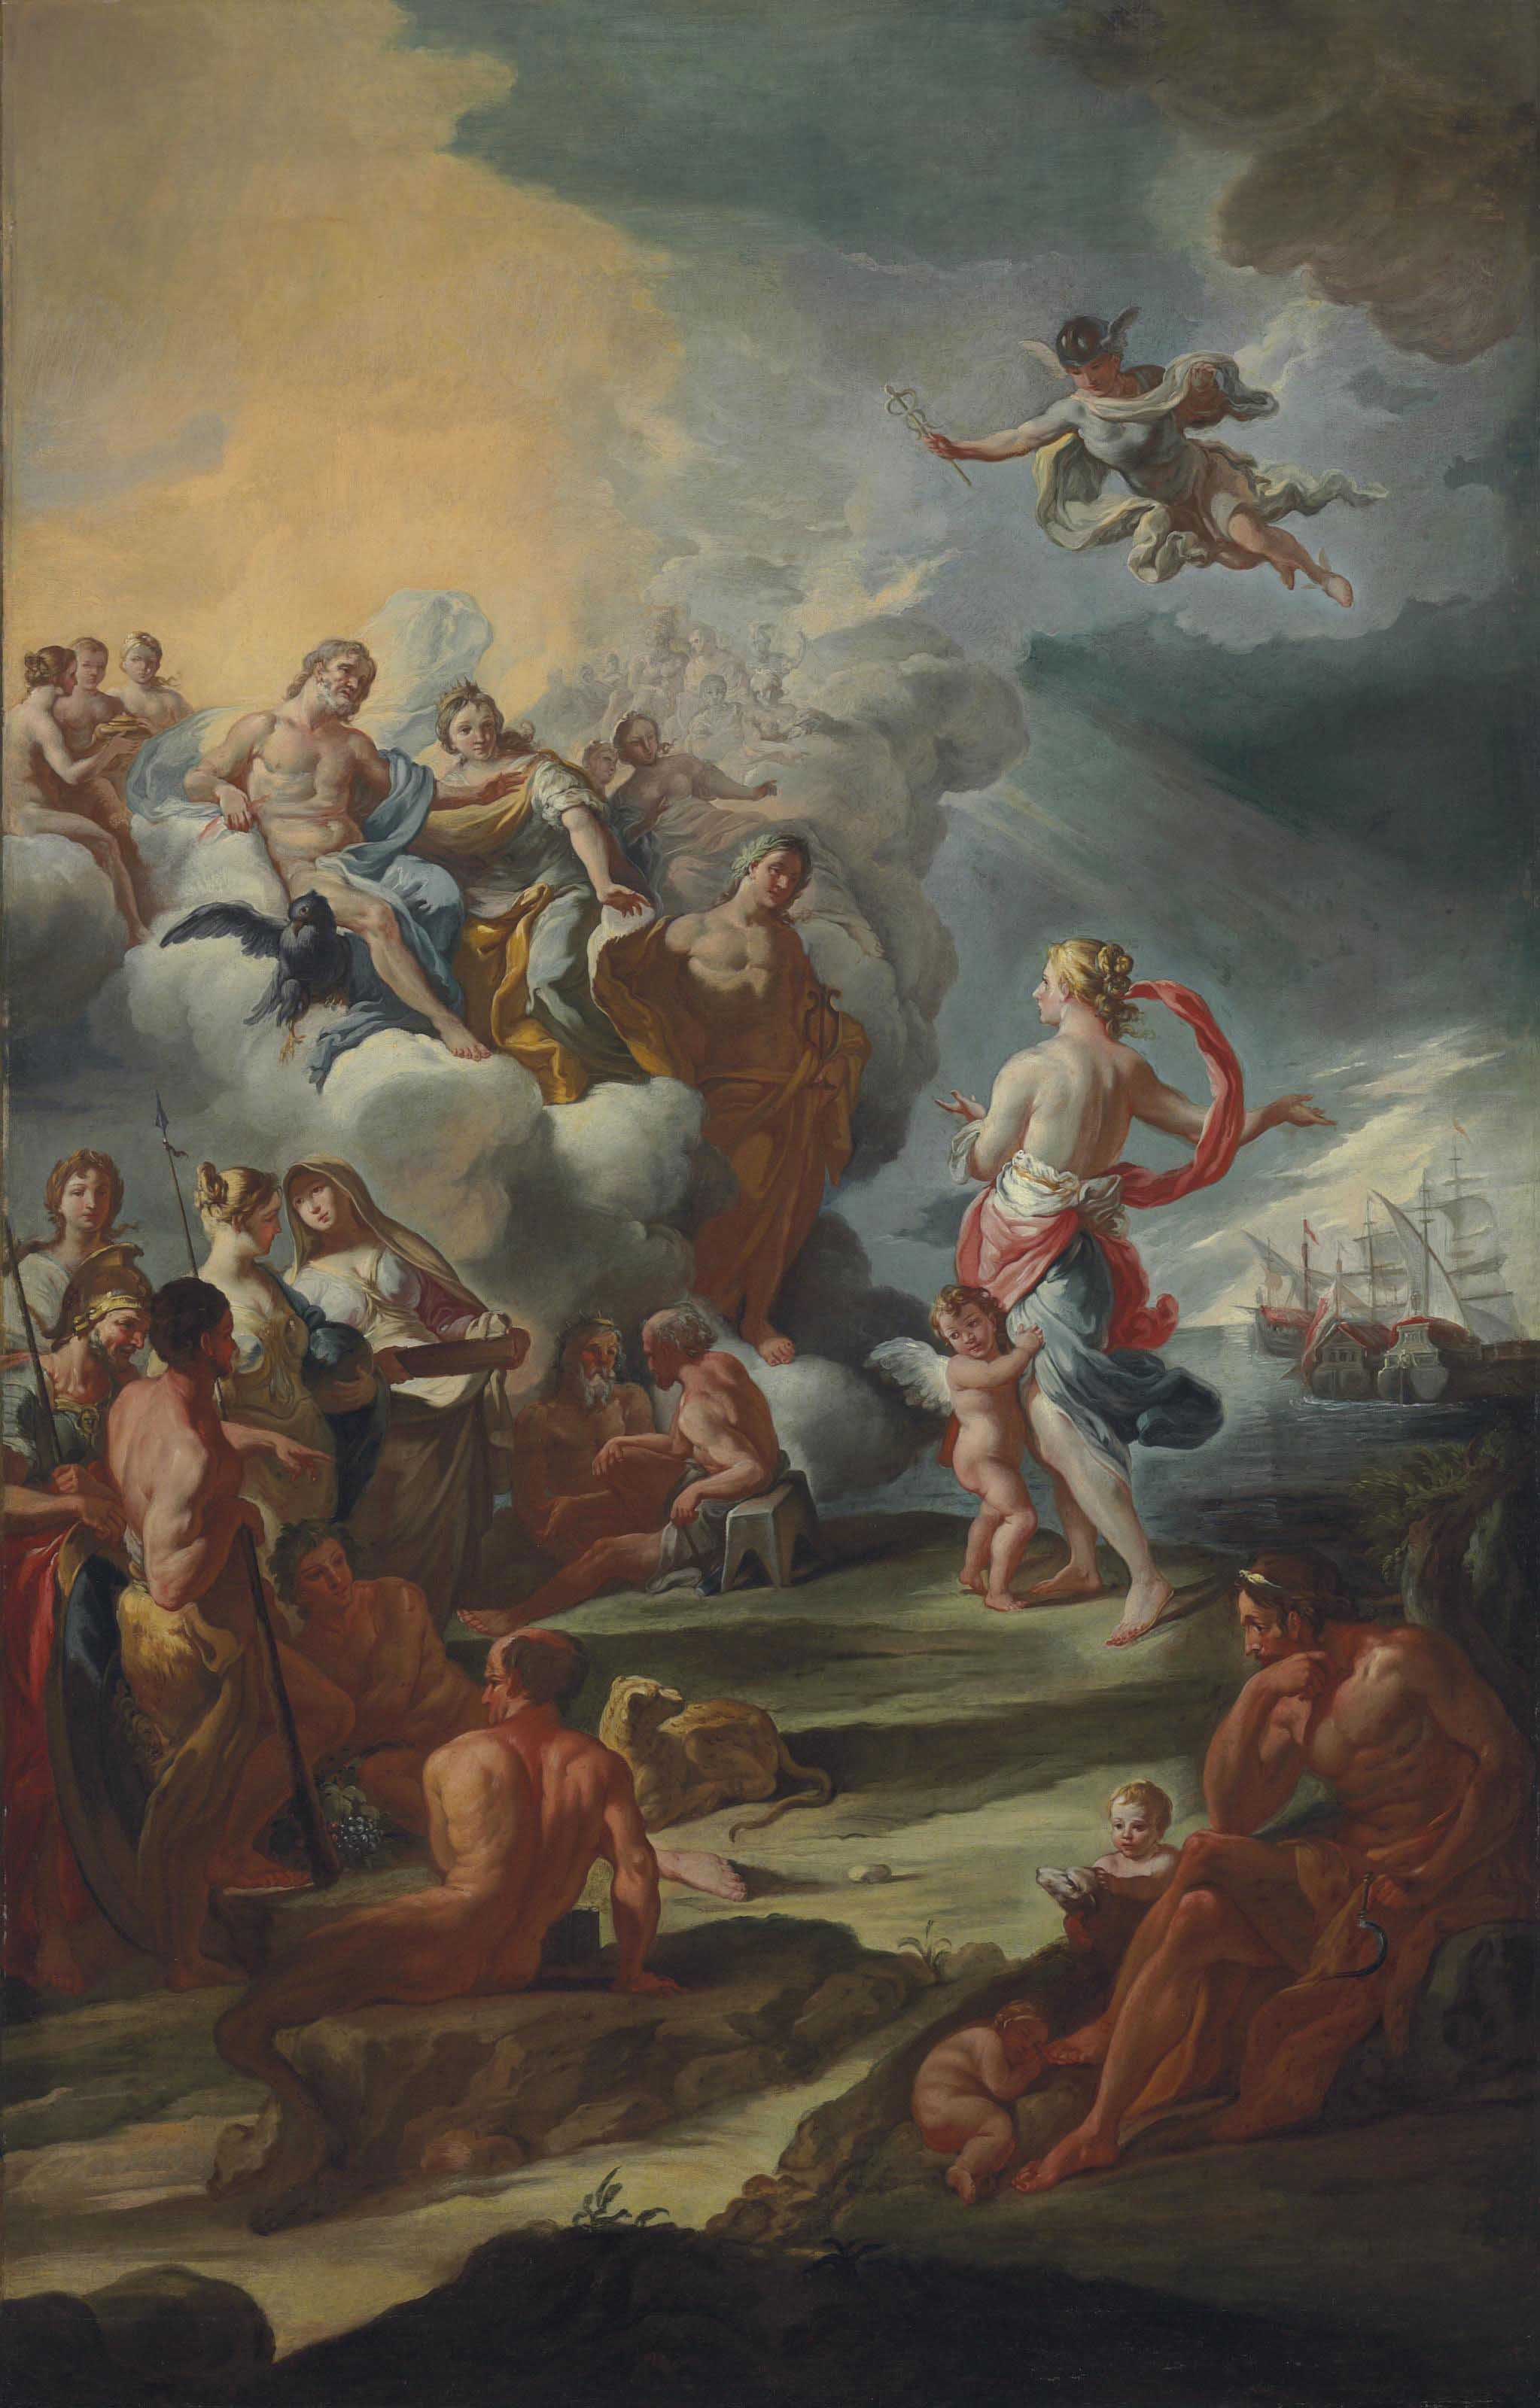 Venus appealing to Jupiter, Juno and Apollo on behalf of a fleet